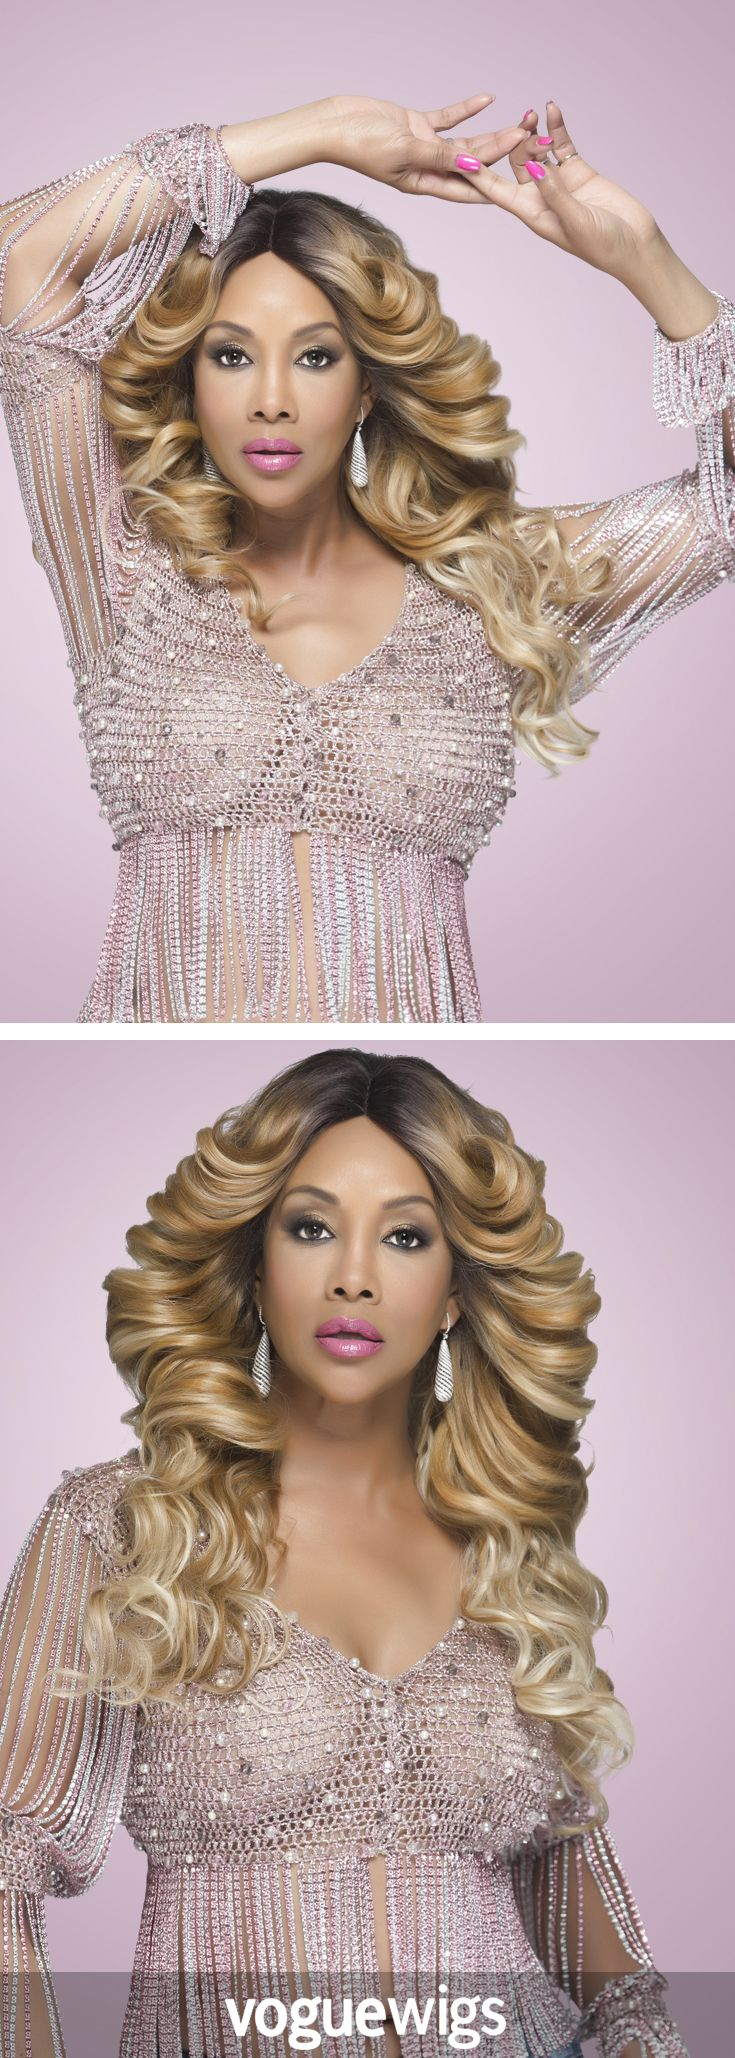 Be a showstopper in the Glam Lace Front Wig by Vivica Fox. The 26 inch long body waves can't help but look glamorous. The best part is that this style is heat friendly so you can change up your look with your mood. Just keep the hot tools between 356 and 392 degrees Fahrenheit to keep the fibers safe and damage free.